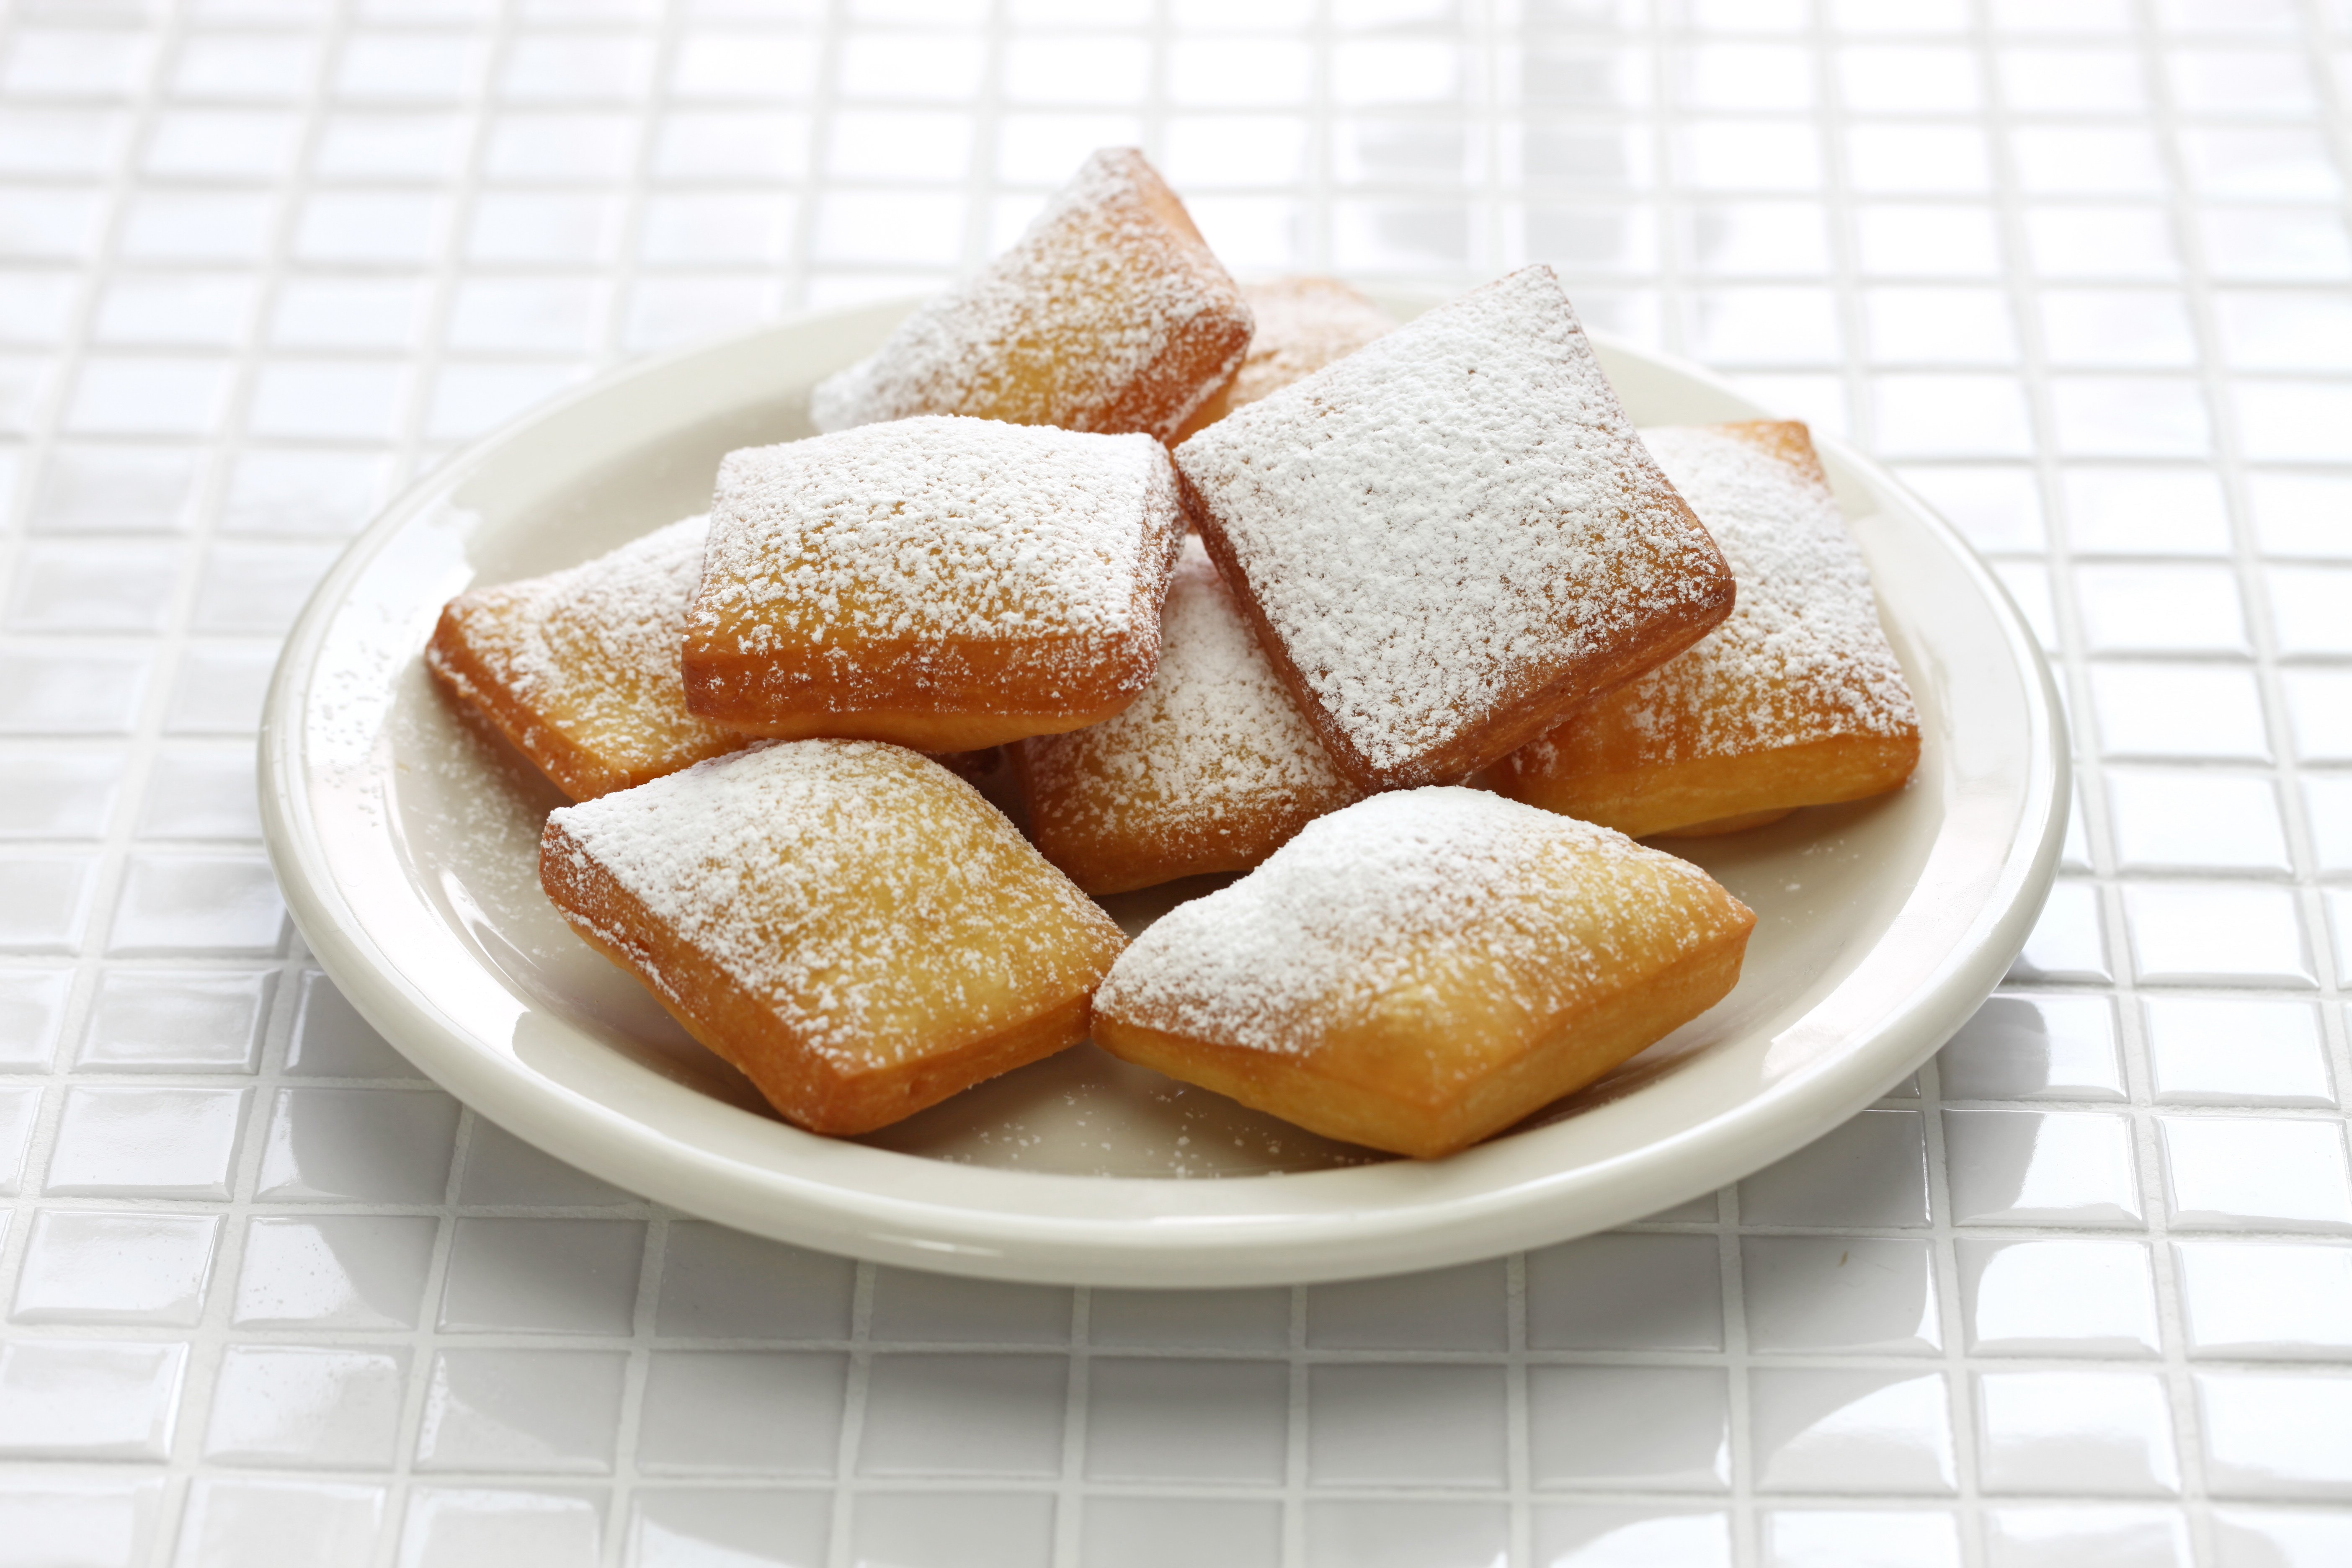 Mandazi (African Fried Donuts)